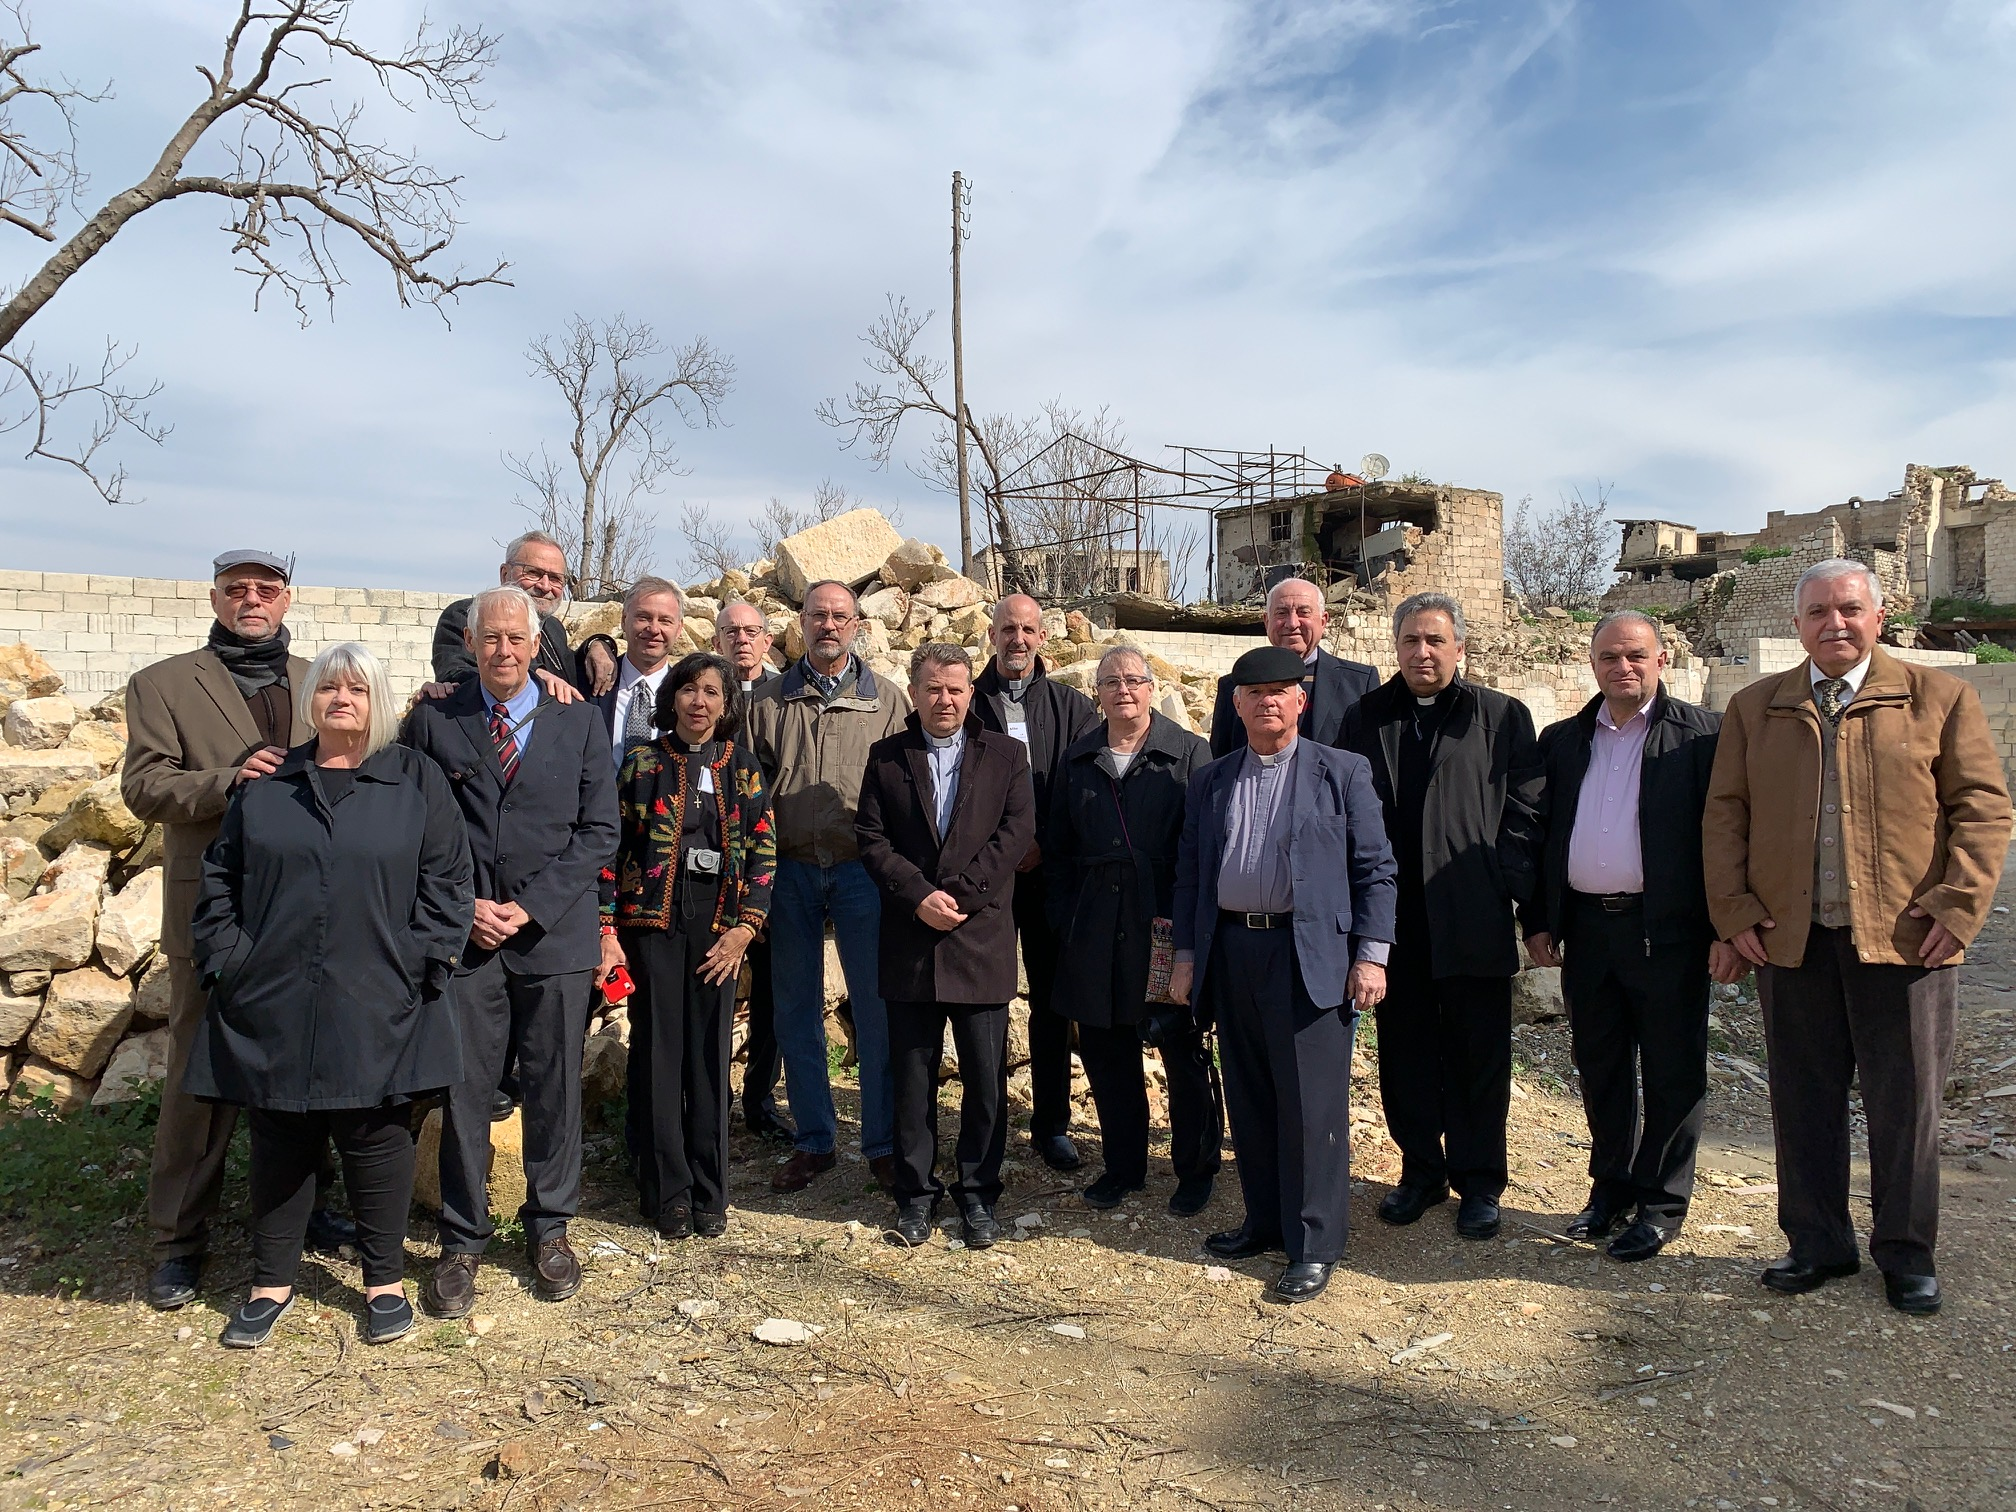 Outreach team with Rev. Nseir and elders of the Aleppo church standing in the rubble of the original church destroyed in November, 2012